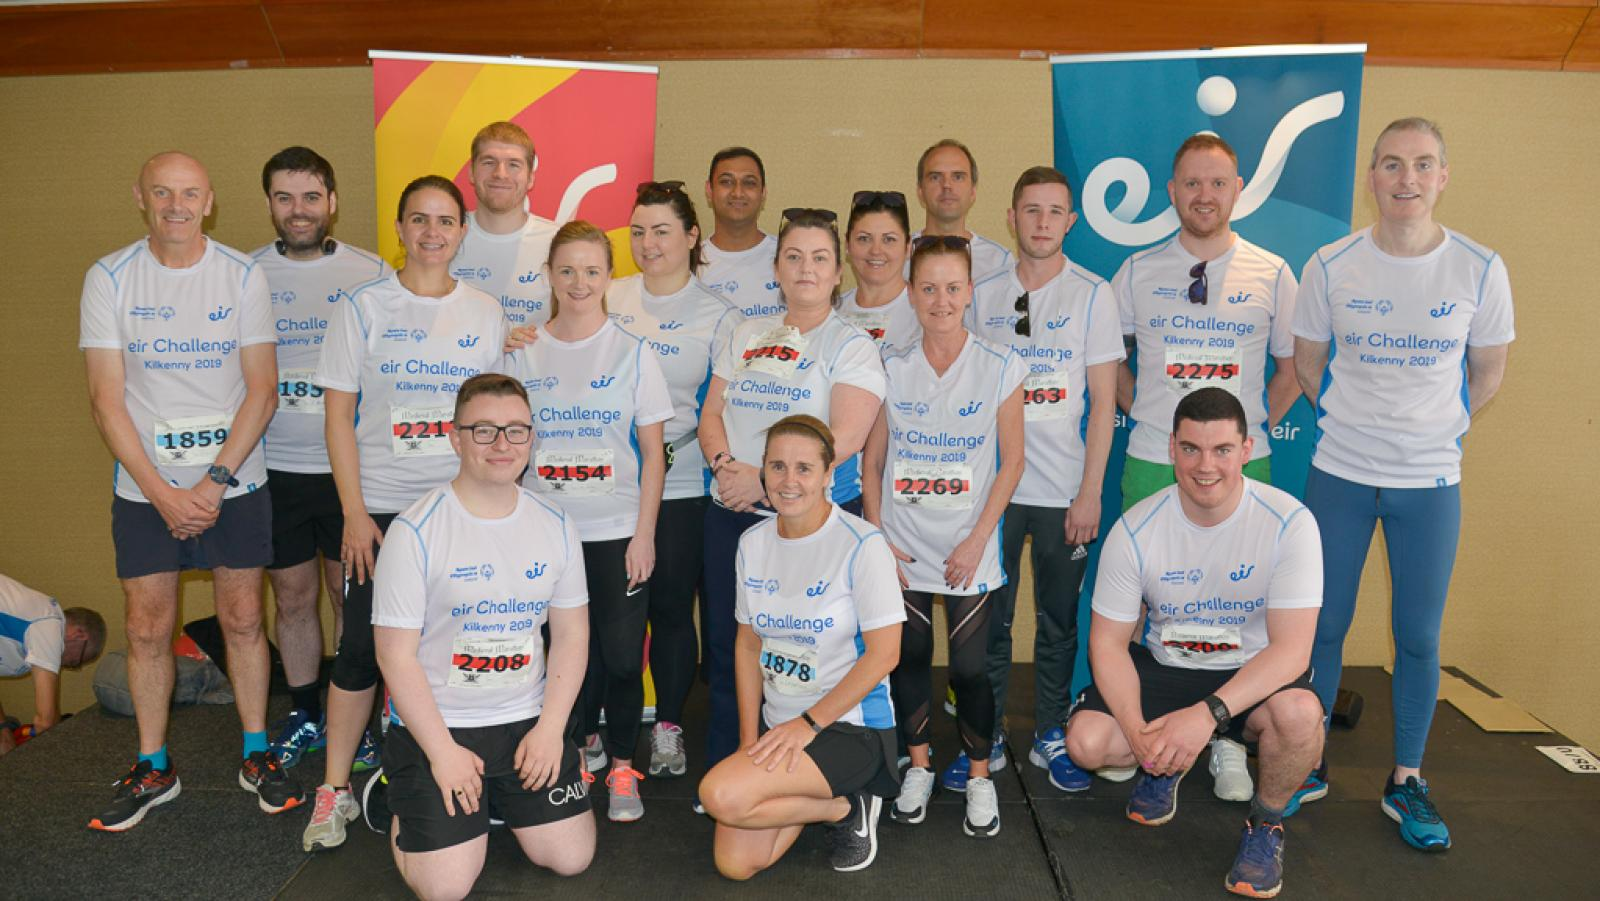 The annual eir Staff Challenge supports Special Olympics Ireland's future champions